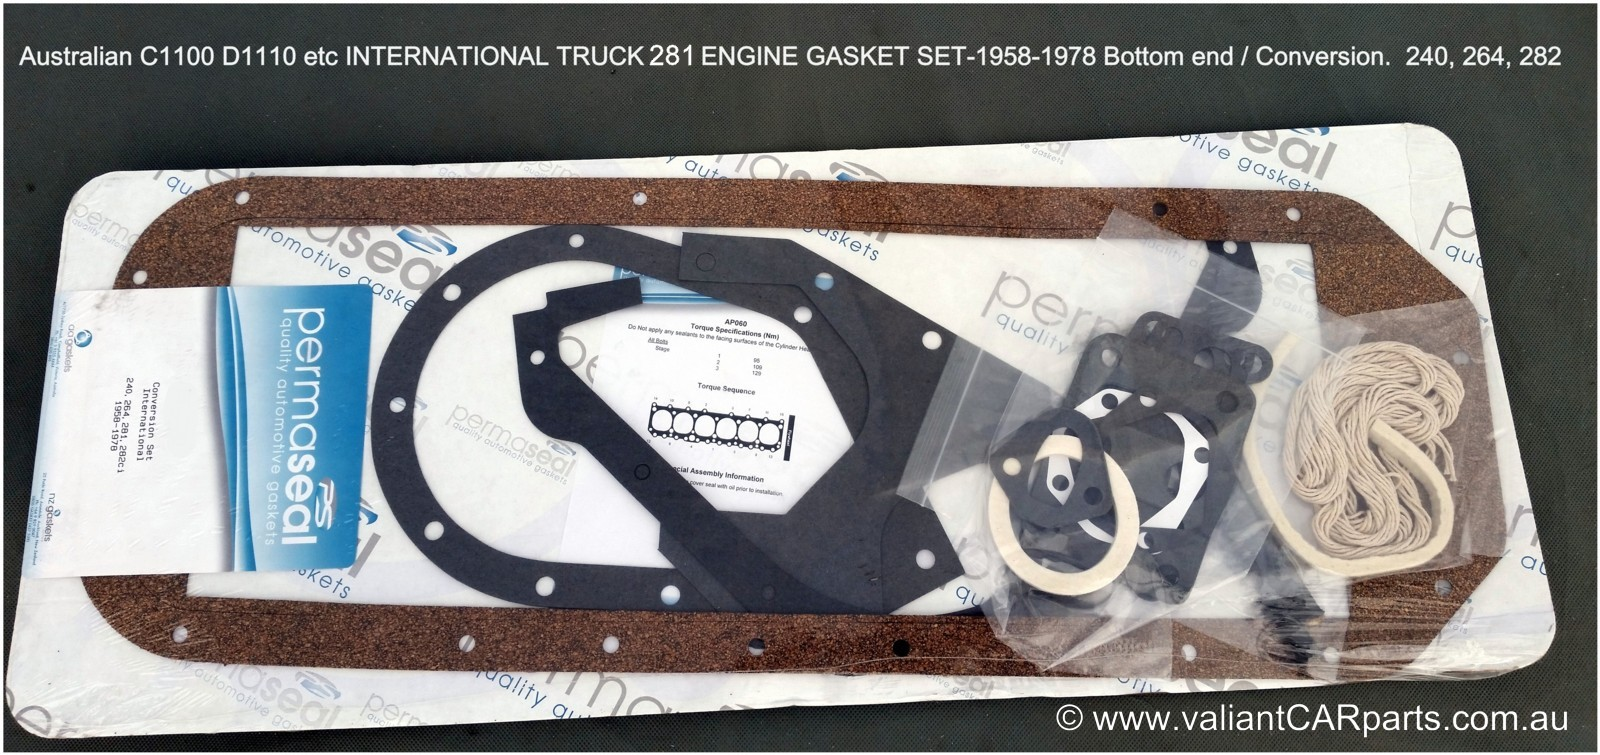 International Truck Parts Engine Diagrams New Quality Manifold Gasket To Suit Australian Ih 1958 1978 Six Cylinder Petrol Engines 3900 Each Including 6 281 282 Cid Cyl